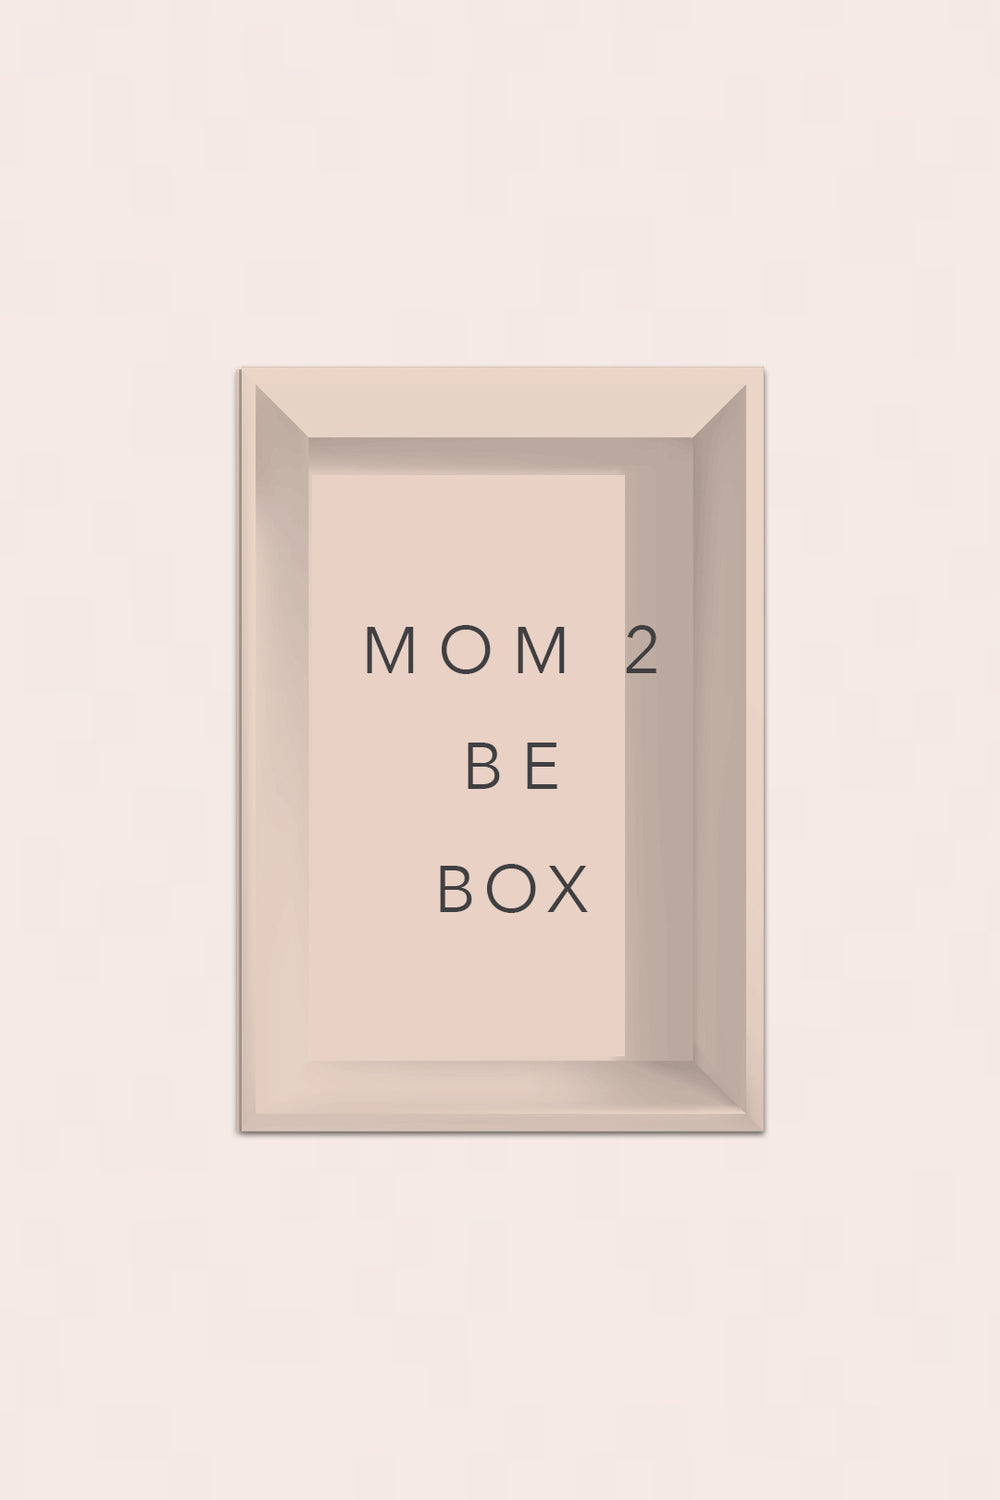 Trust Us Box MOM 2 BE